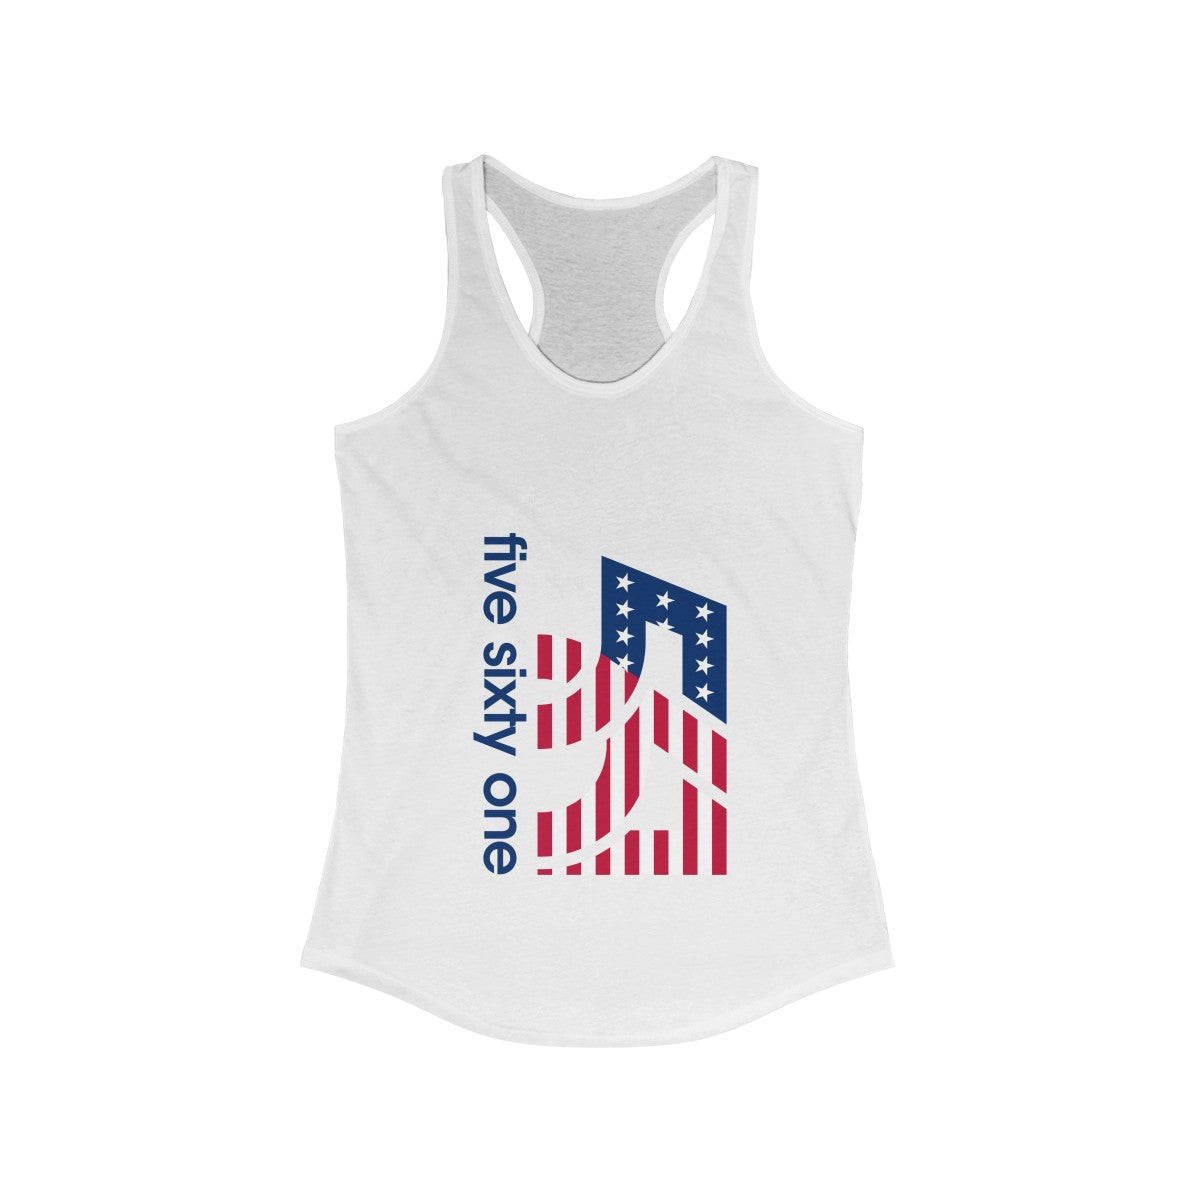 five-sixty-one-america-logo-womens-ideal-racerback-tank